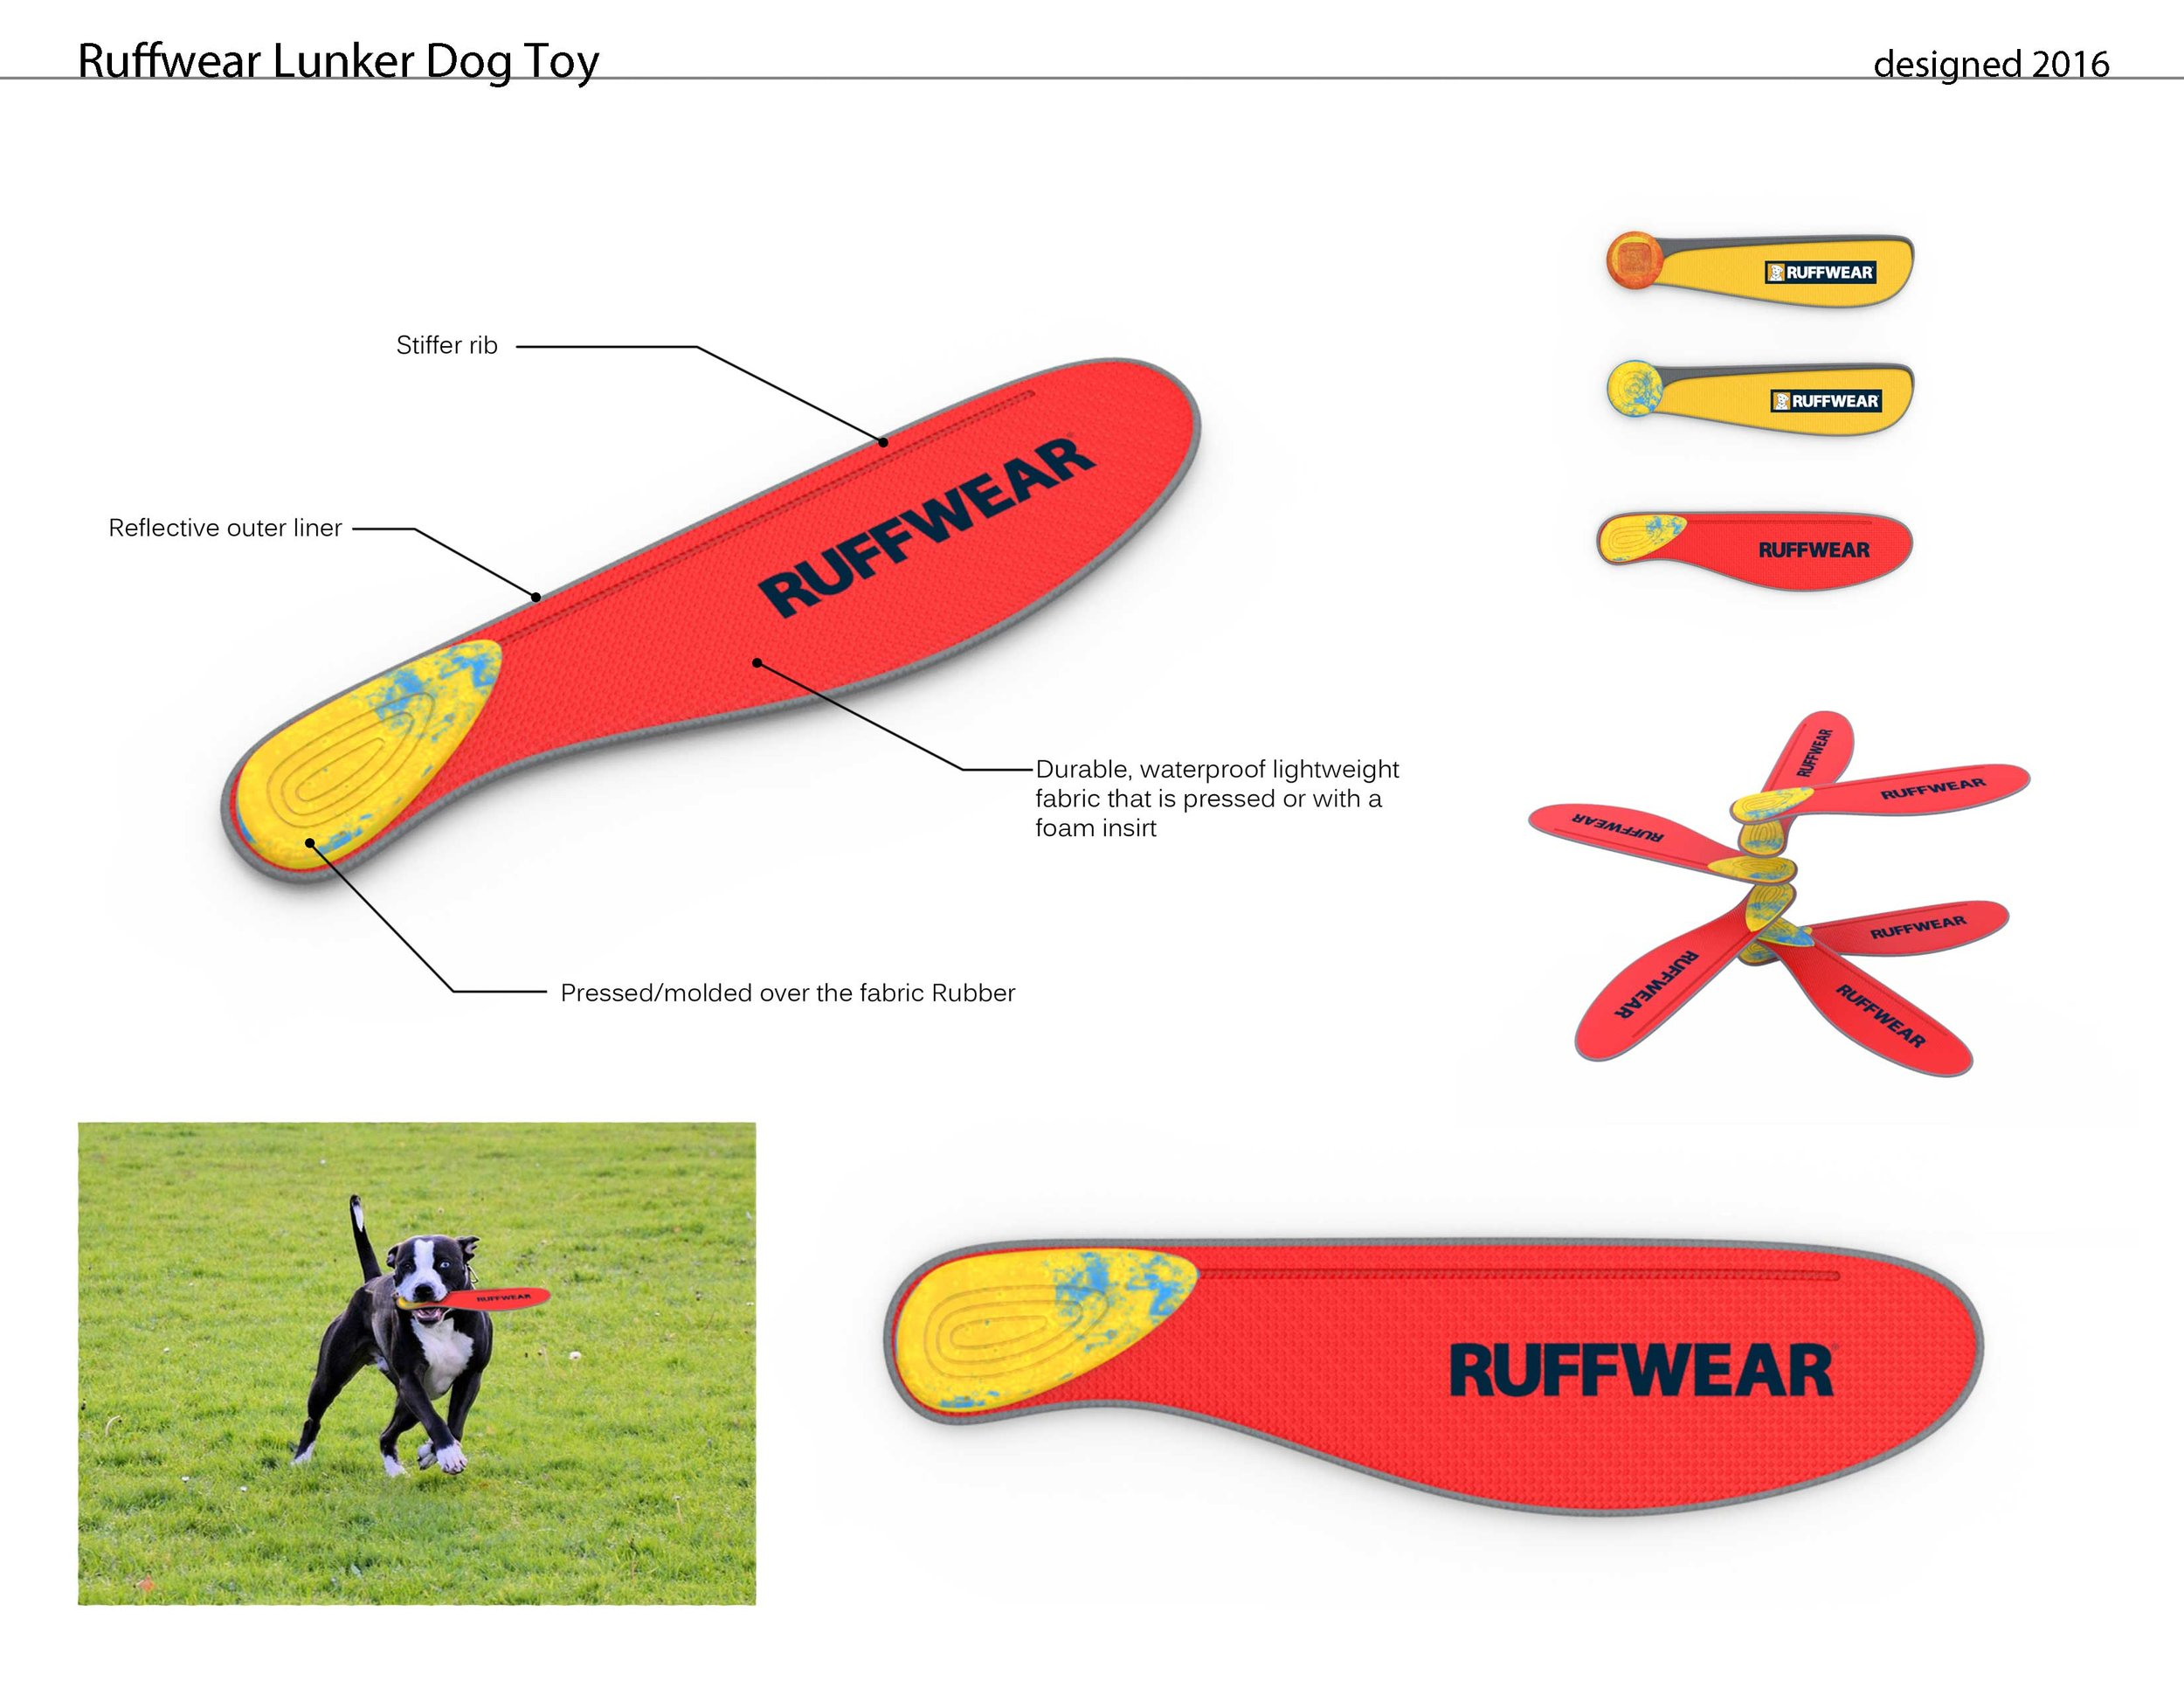 Ruffwear-Lunker-Dog-Toy.jpg